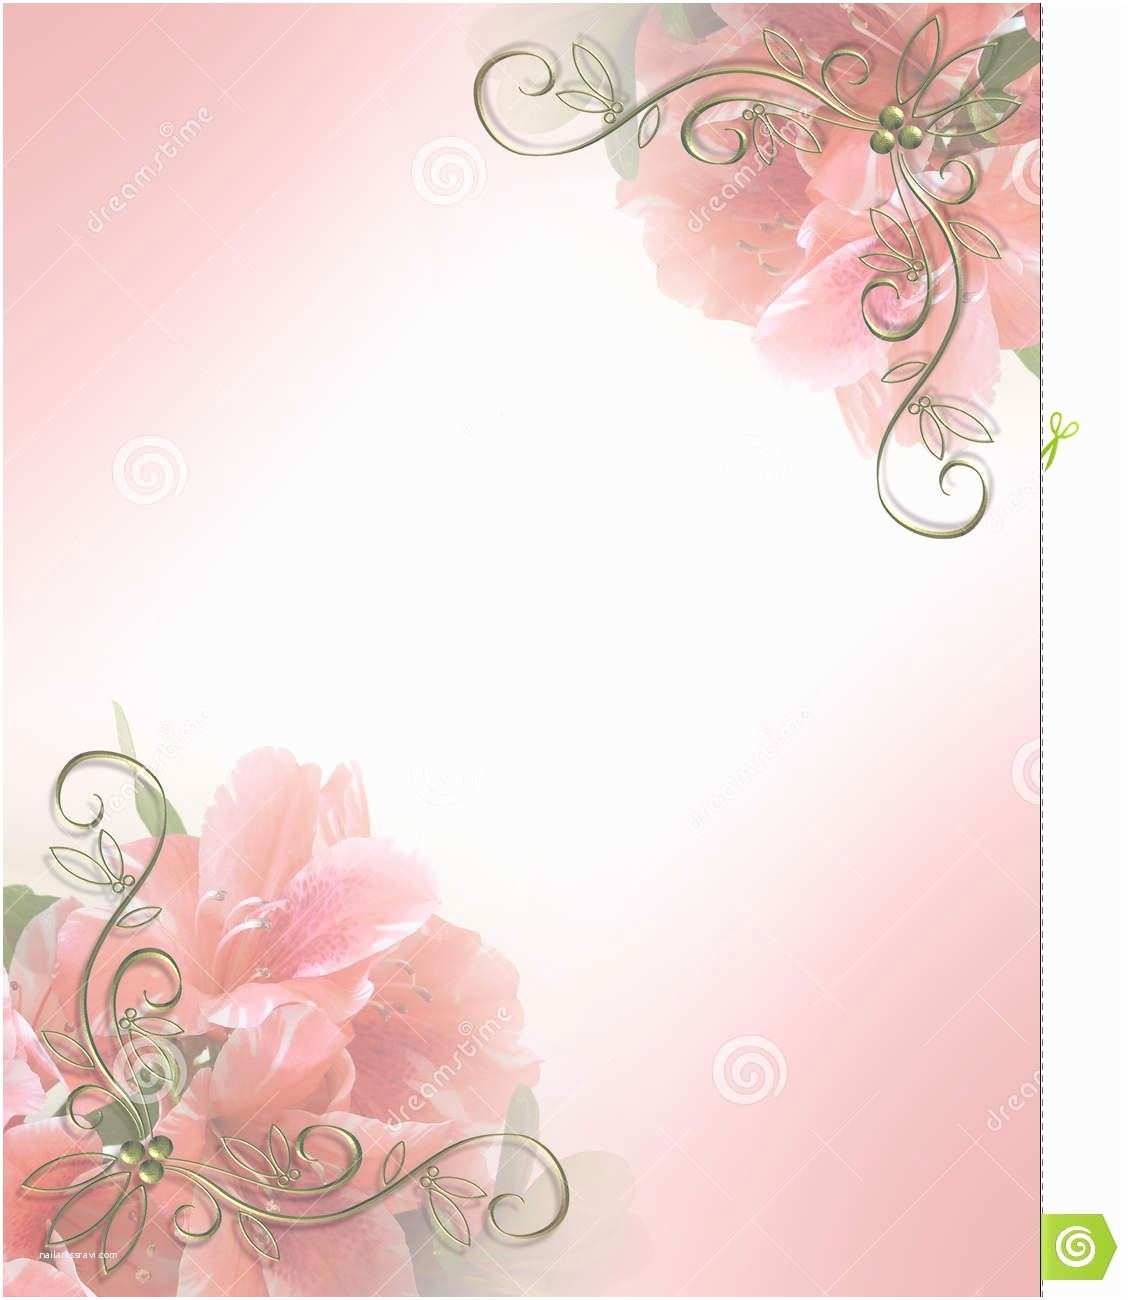 Background Designs for Wedding Invitations Free Awe Inspiring Wedding Invitation Background